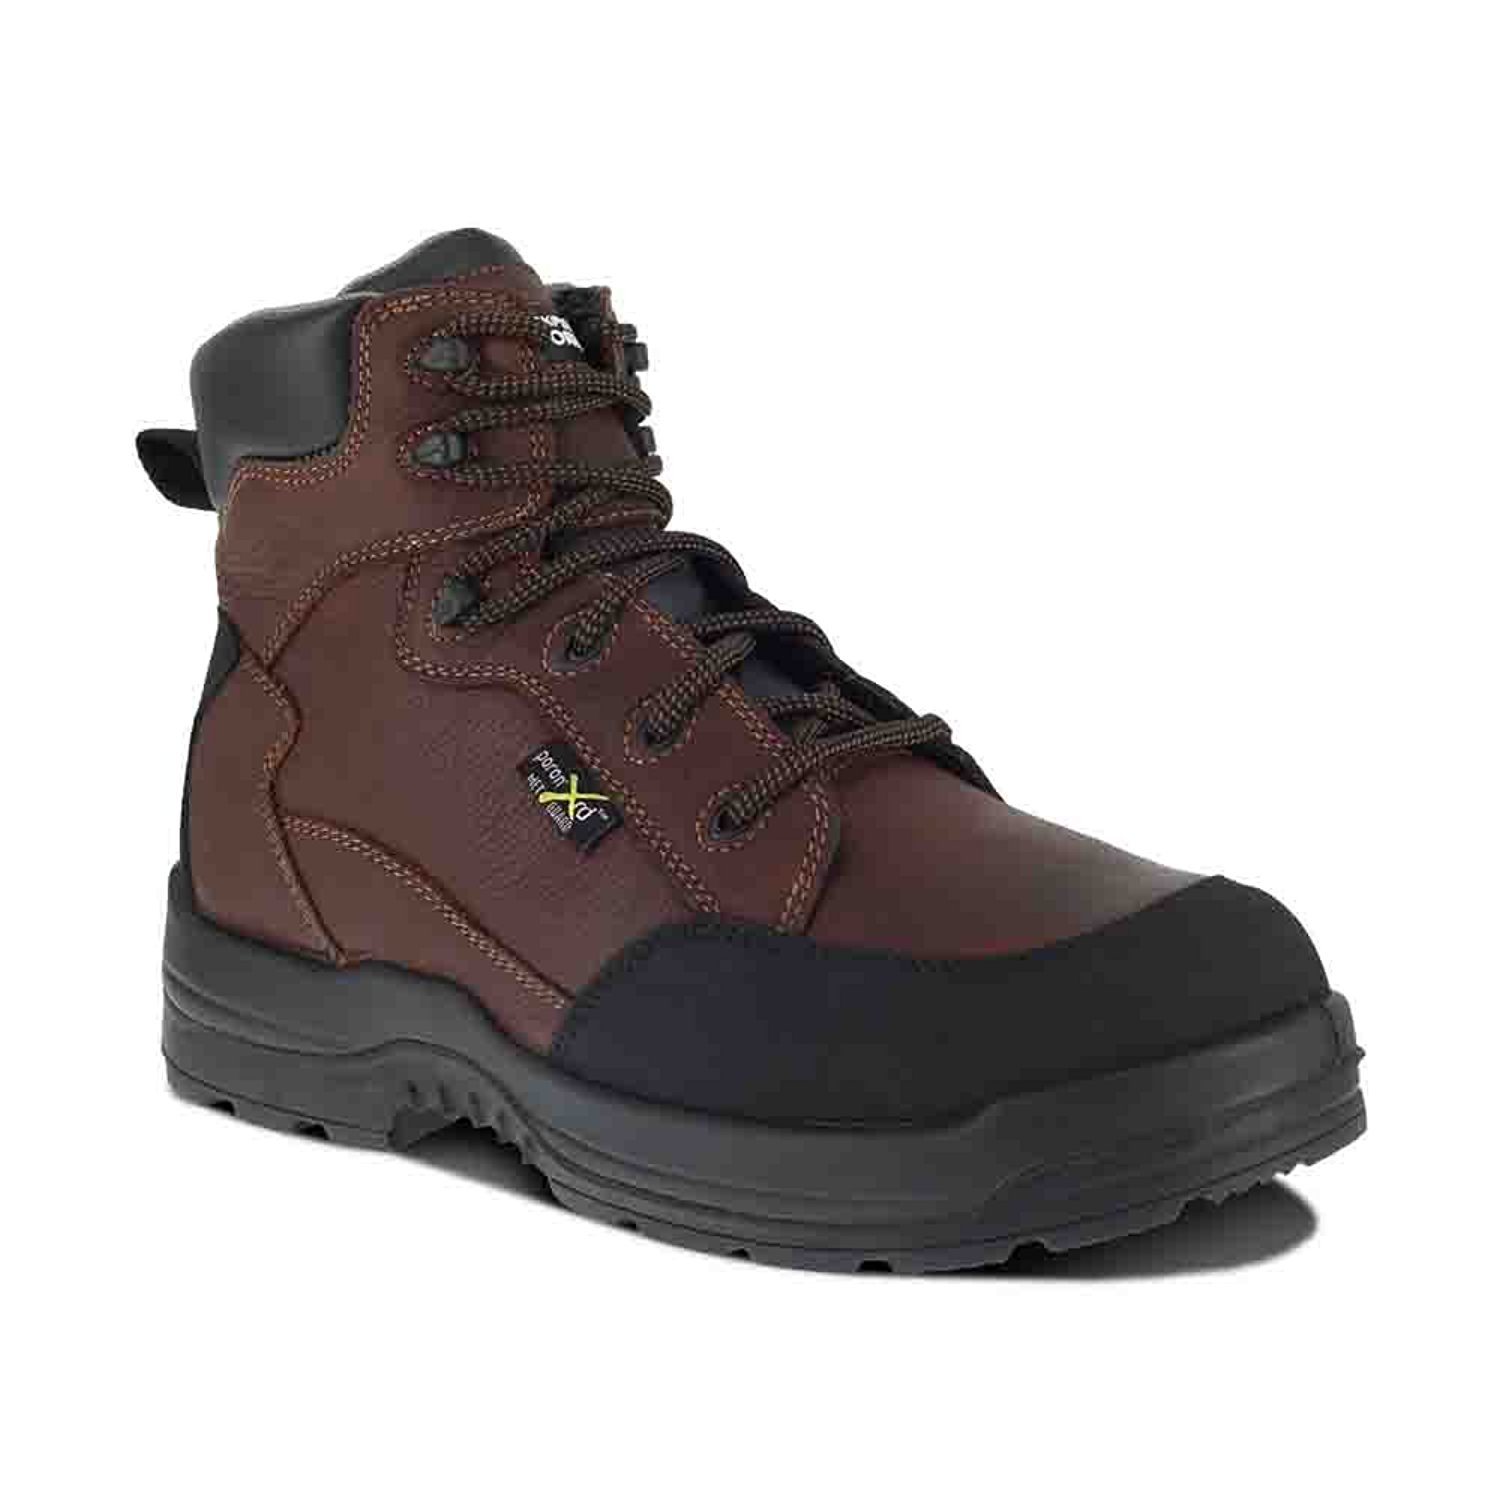 575d77c104a8 Get Quotations · Rockport Work RK664 Womens More Energy Brown 6